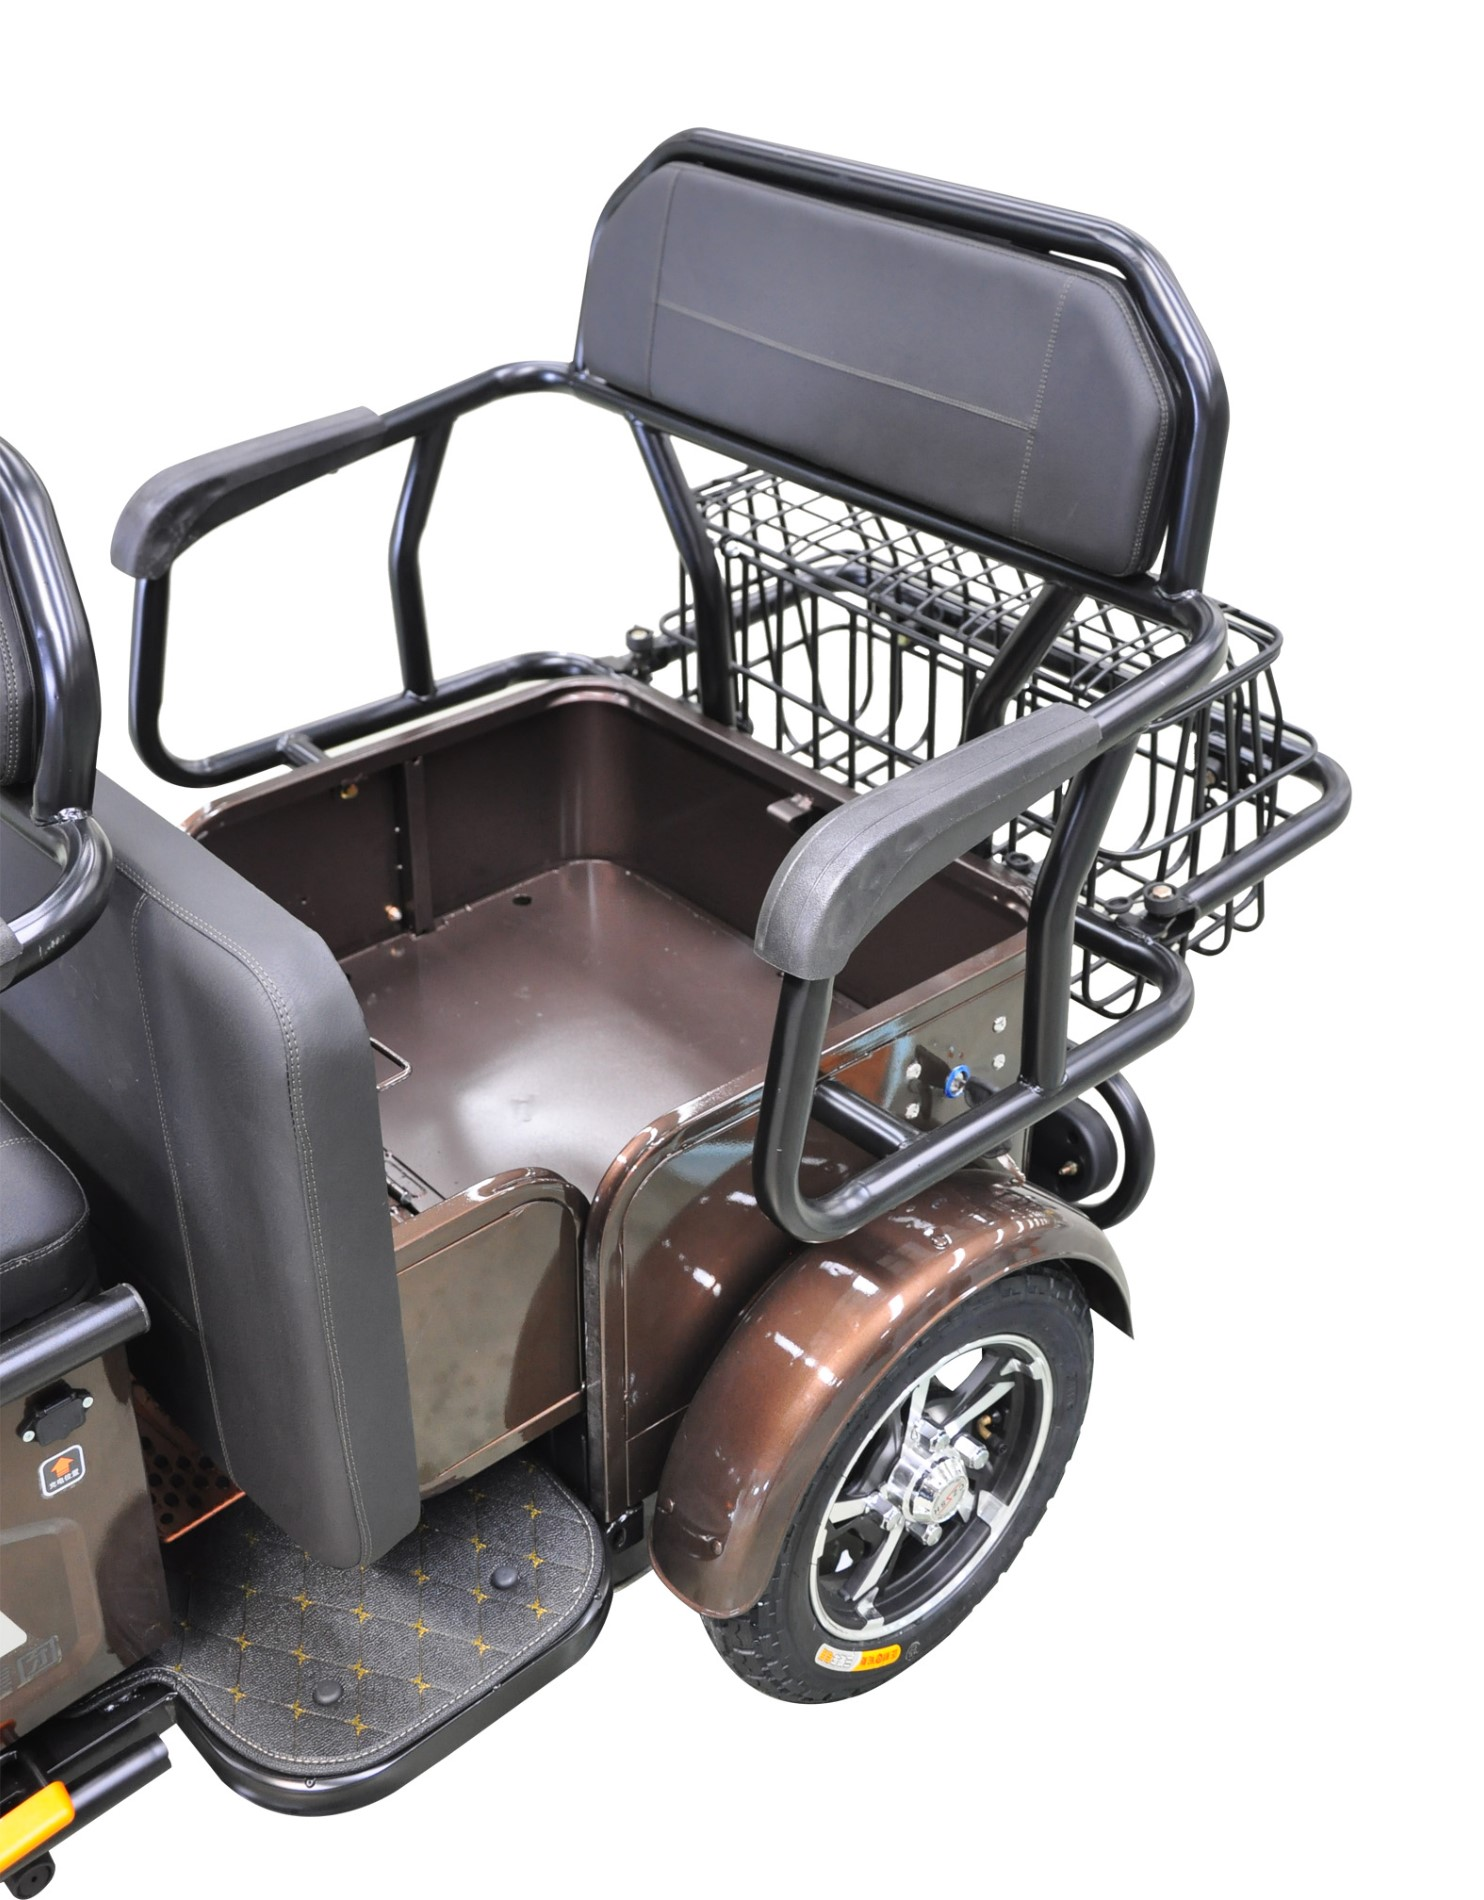 High quality Smart passenger Electric Tricycle For Disabled Quotes,China Smart passenger Electric Tricycle For Disabled Factory,Smart passenger Electric Tricycle For Disabled Purchasing